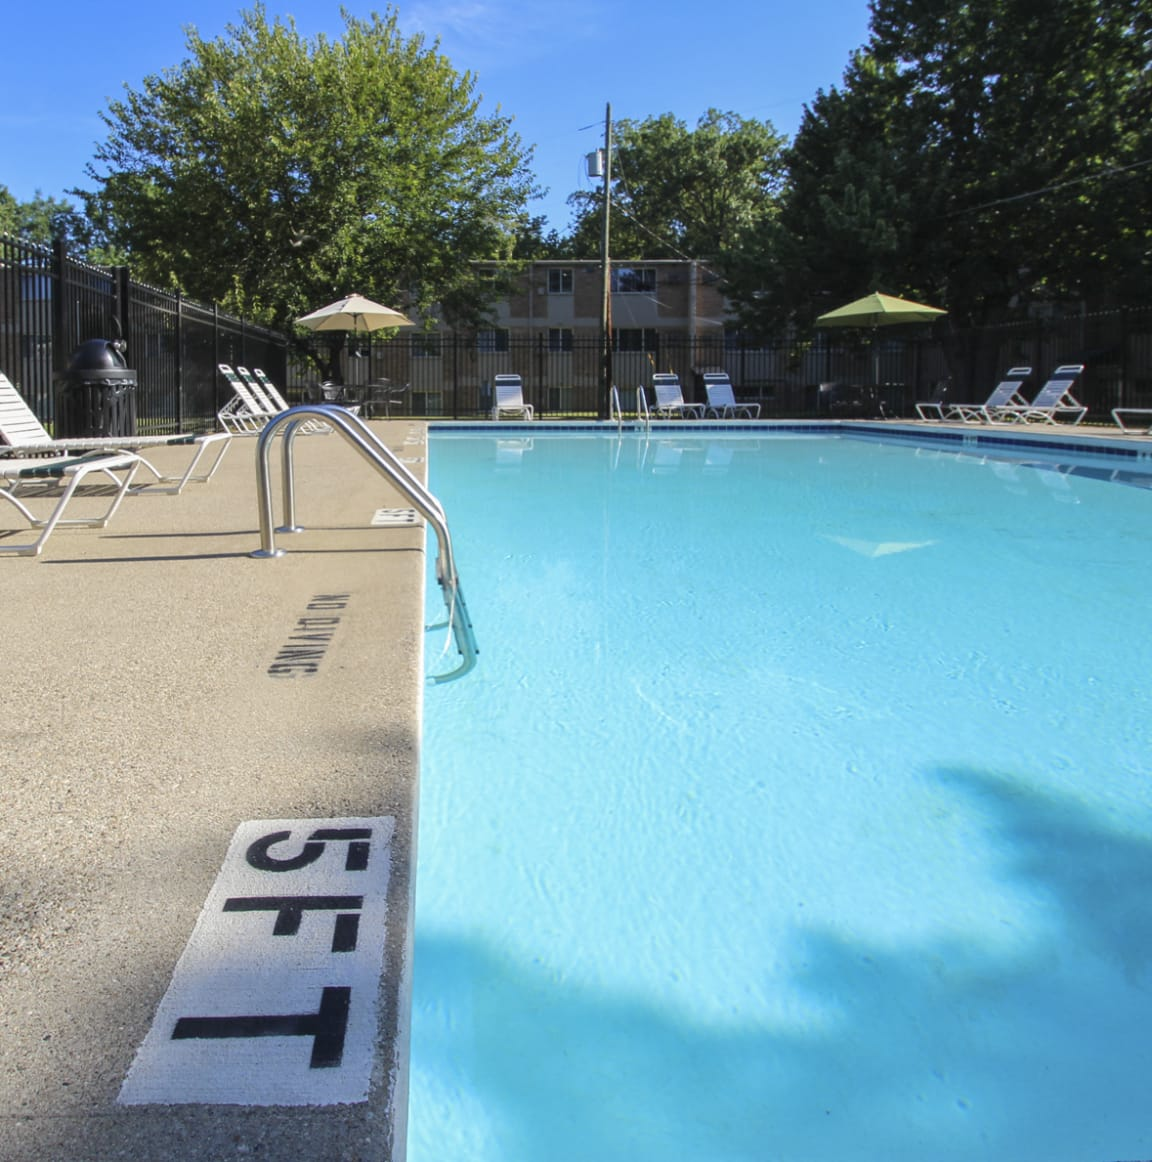 This is a picture of the pool area at Red Bank Reserve in Cincinnati, Ohio